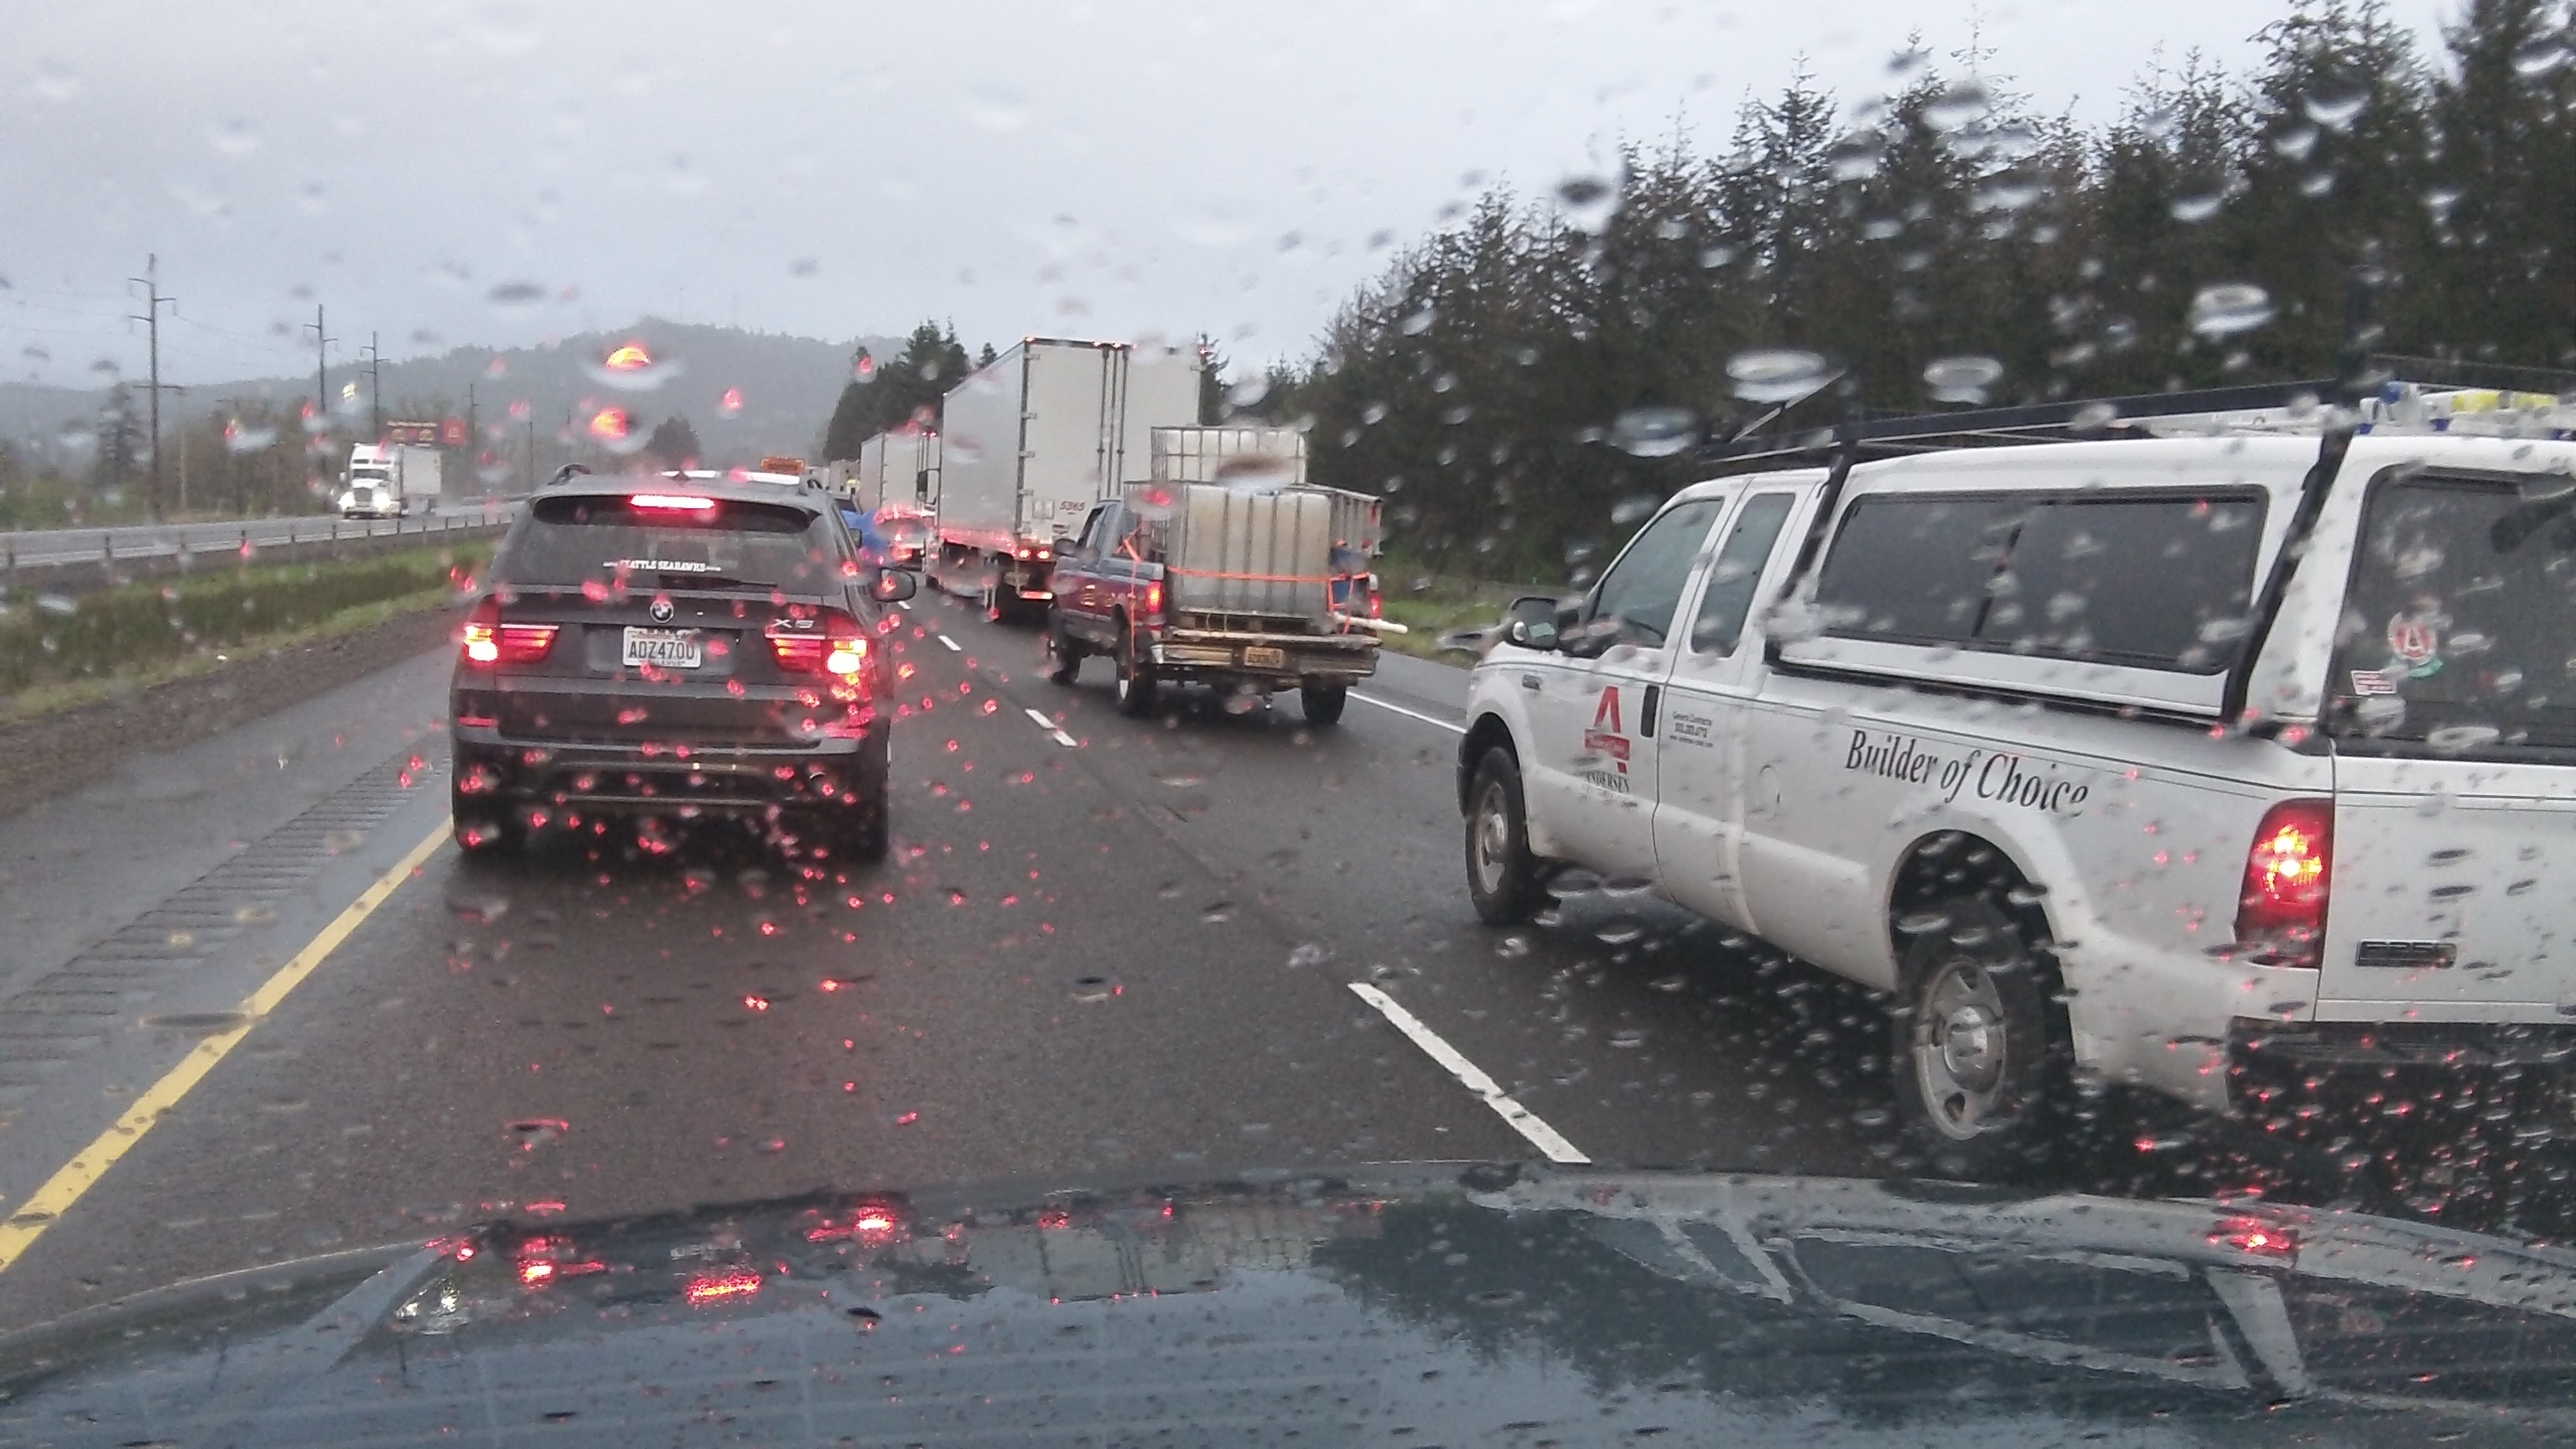 When you're stuck on I-5, some information would help.